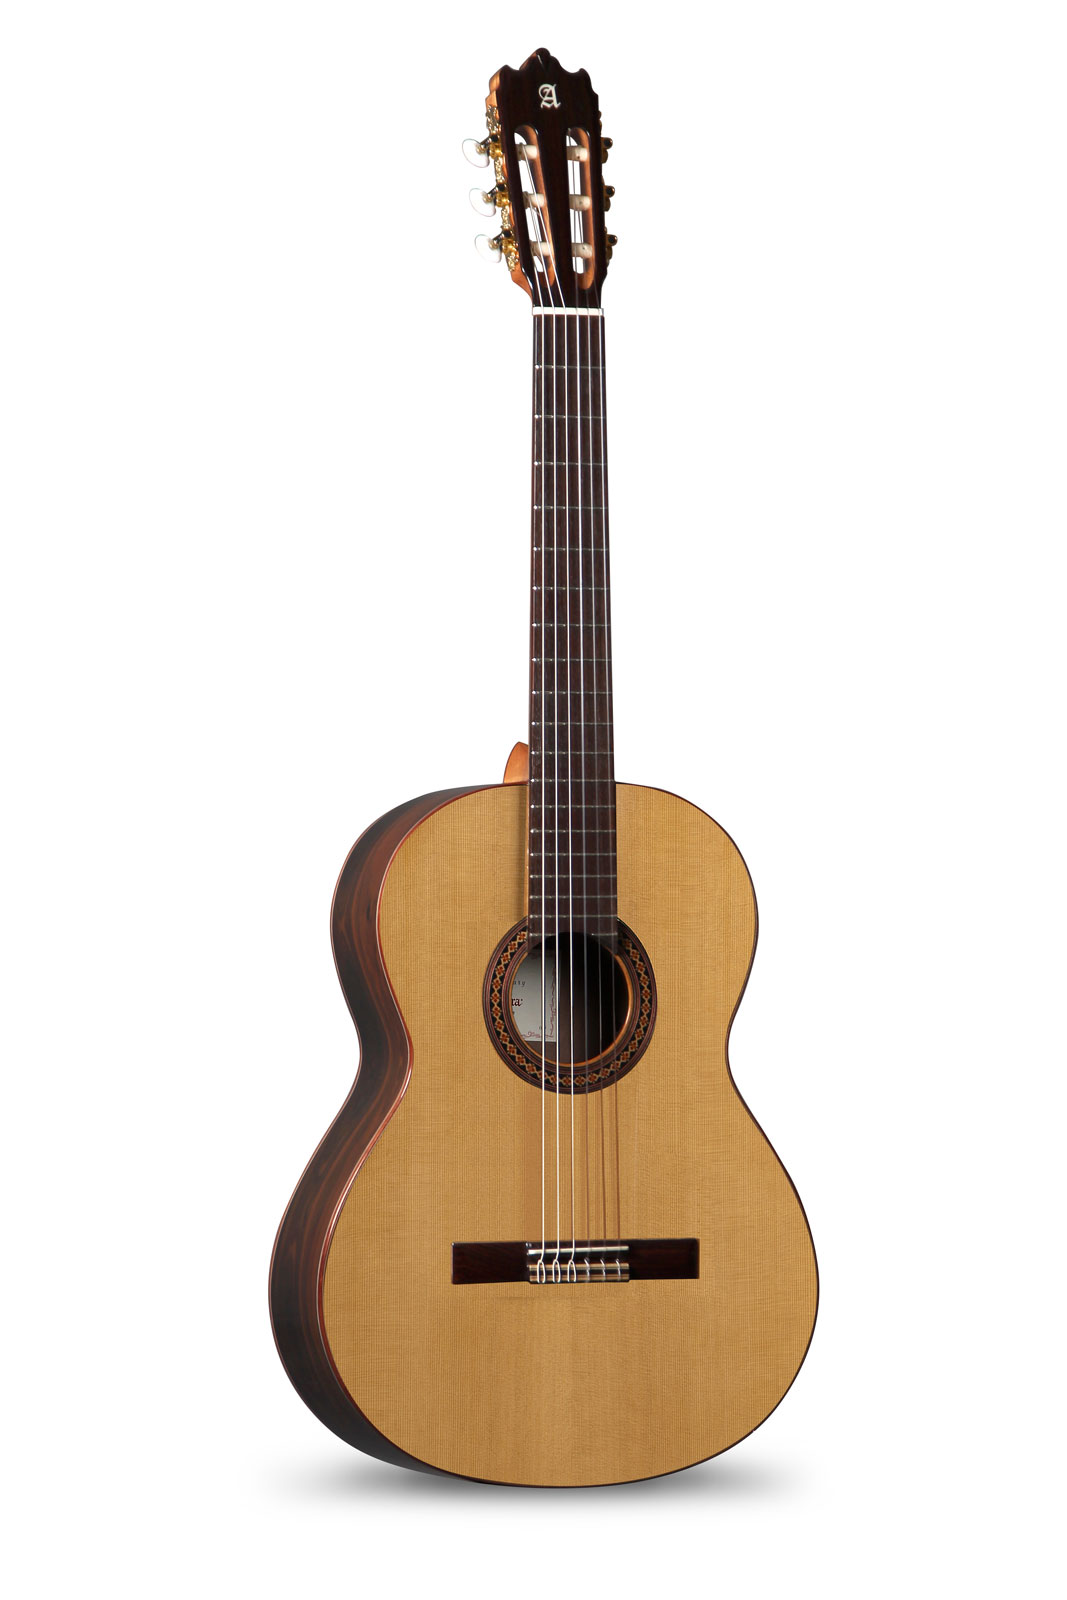 Guitare Table Massive Alhambra 4 Op Guitar Buy Online Free Scores